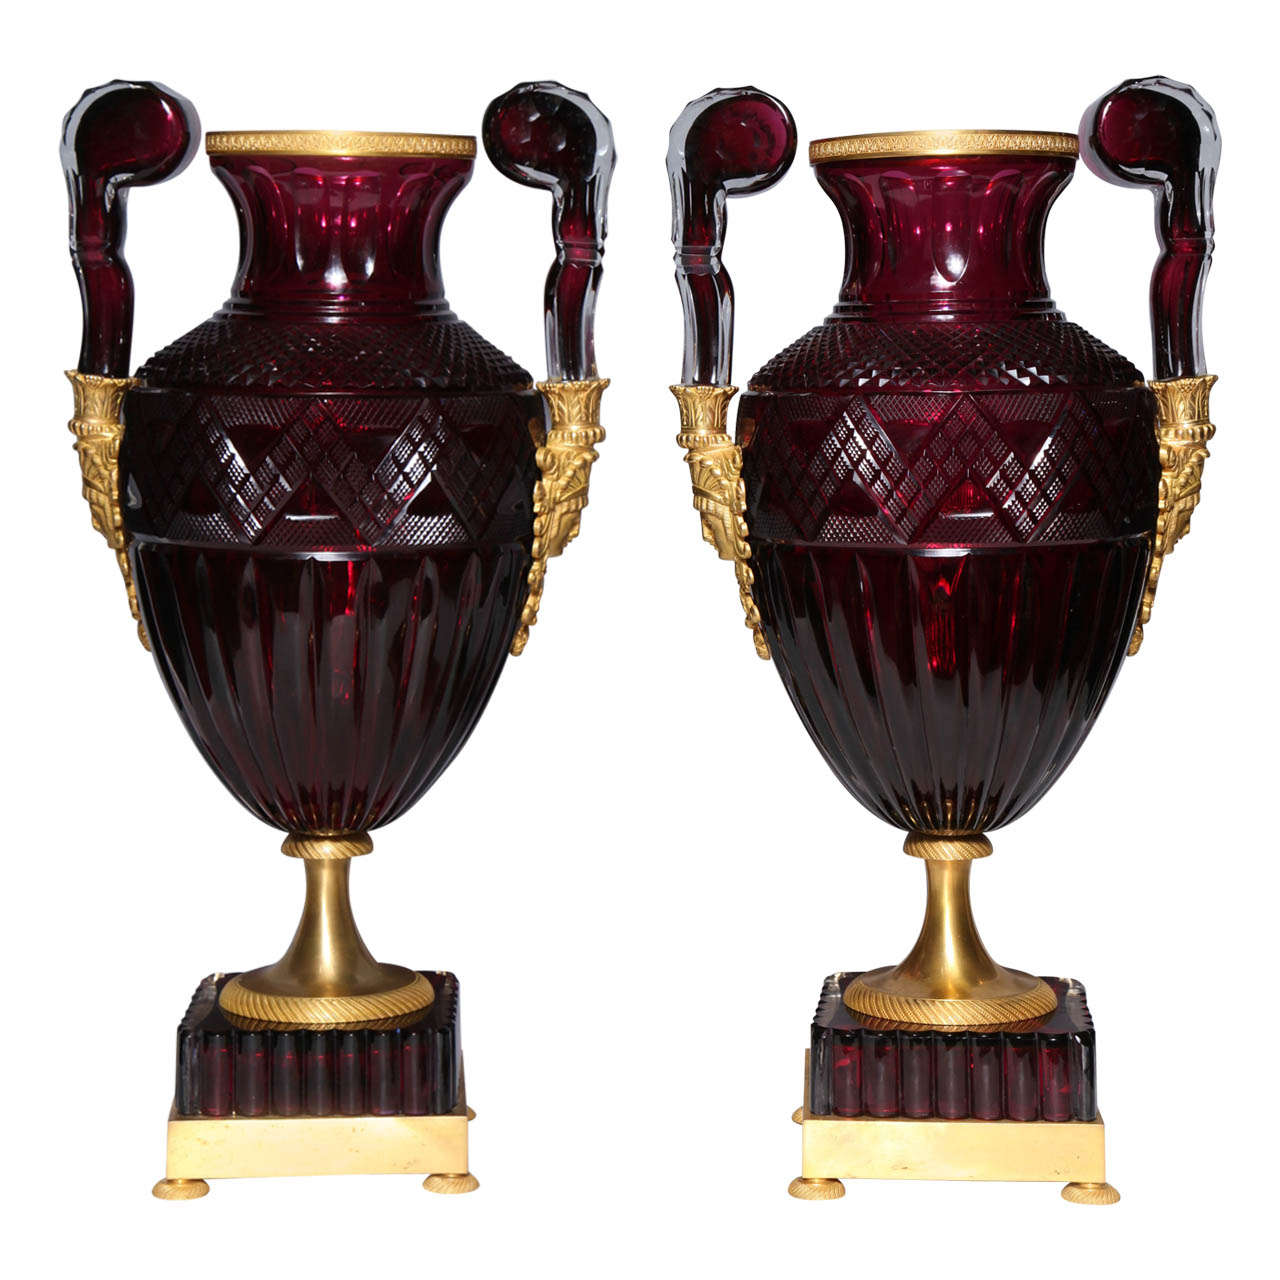 A Magnificent Pair of Russian Imperial Ruby Glass Vases with Gilded Bronze Mounts For Sale